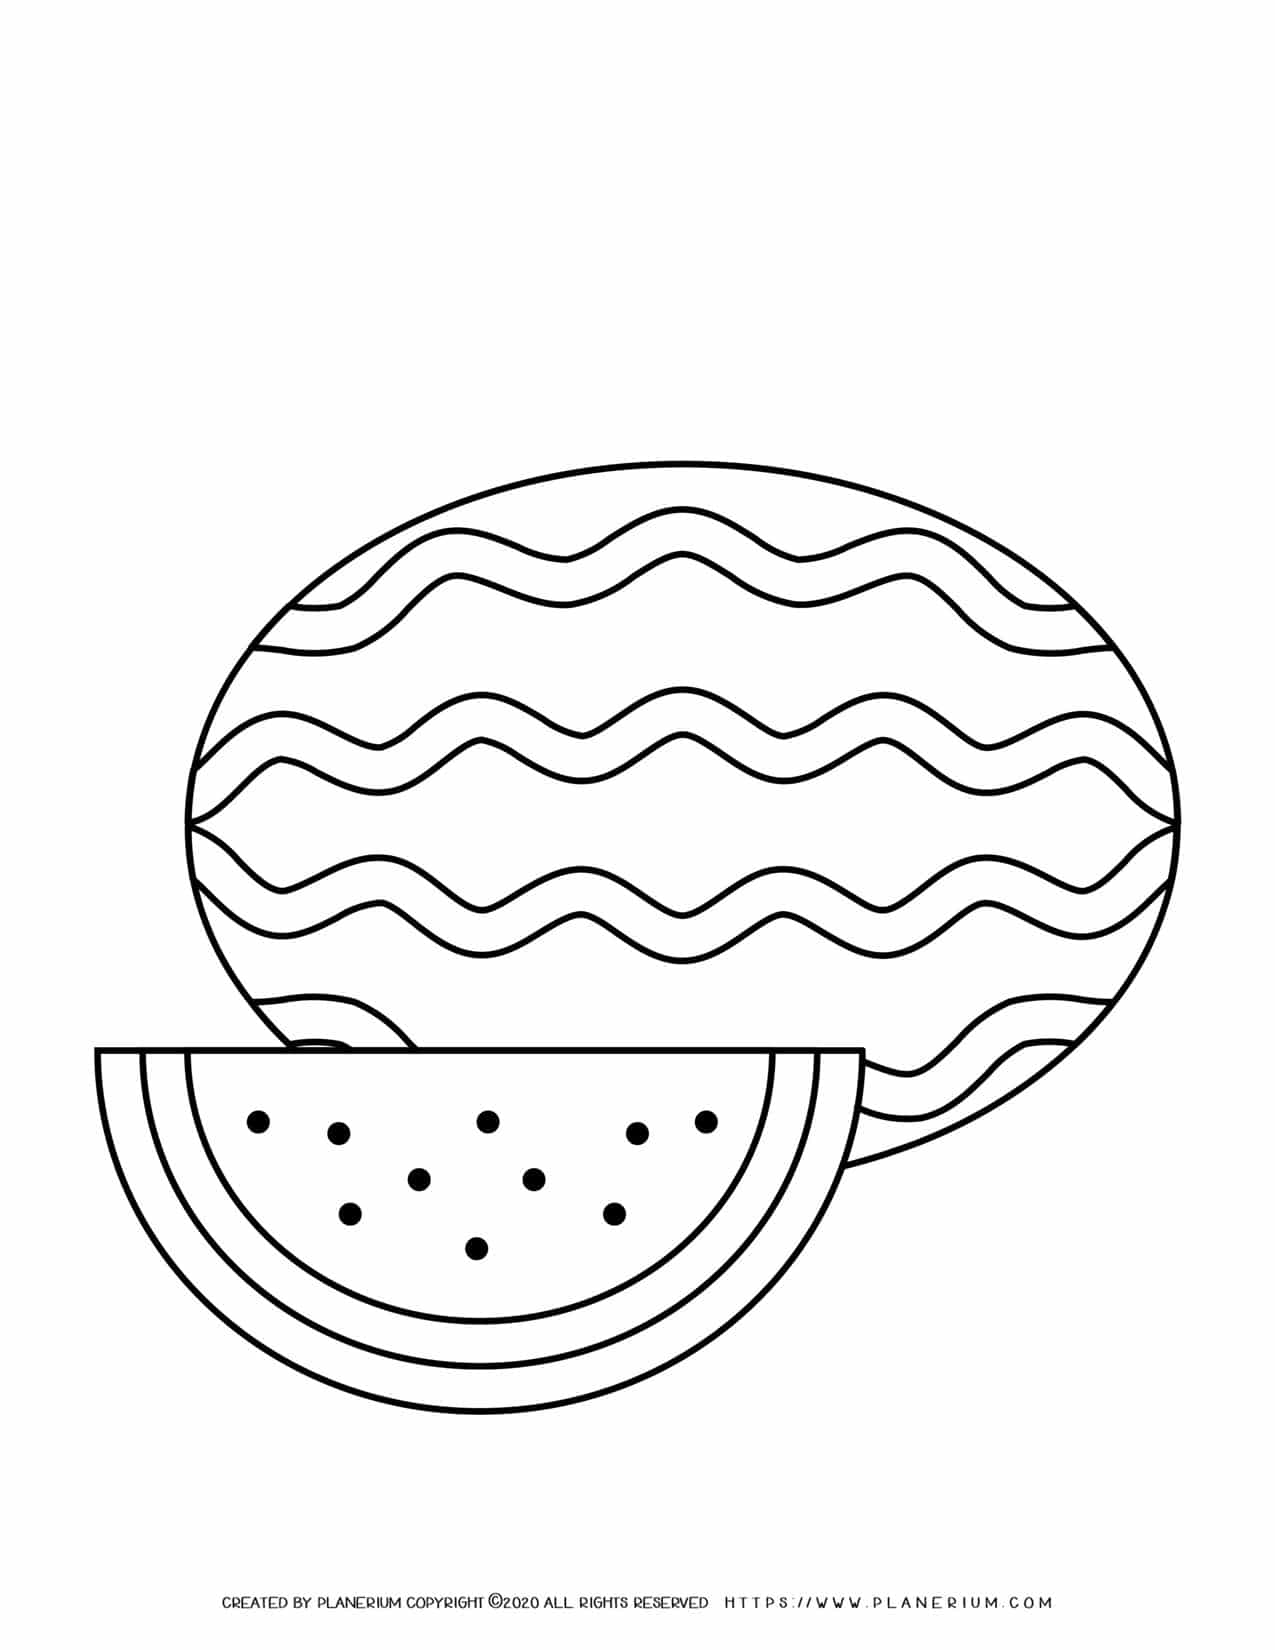 Watermelon - Coloring page | Planerium